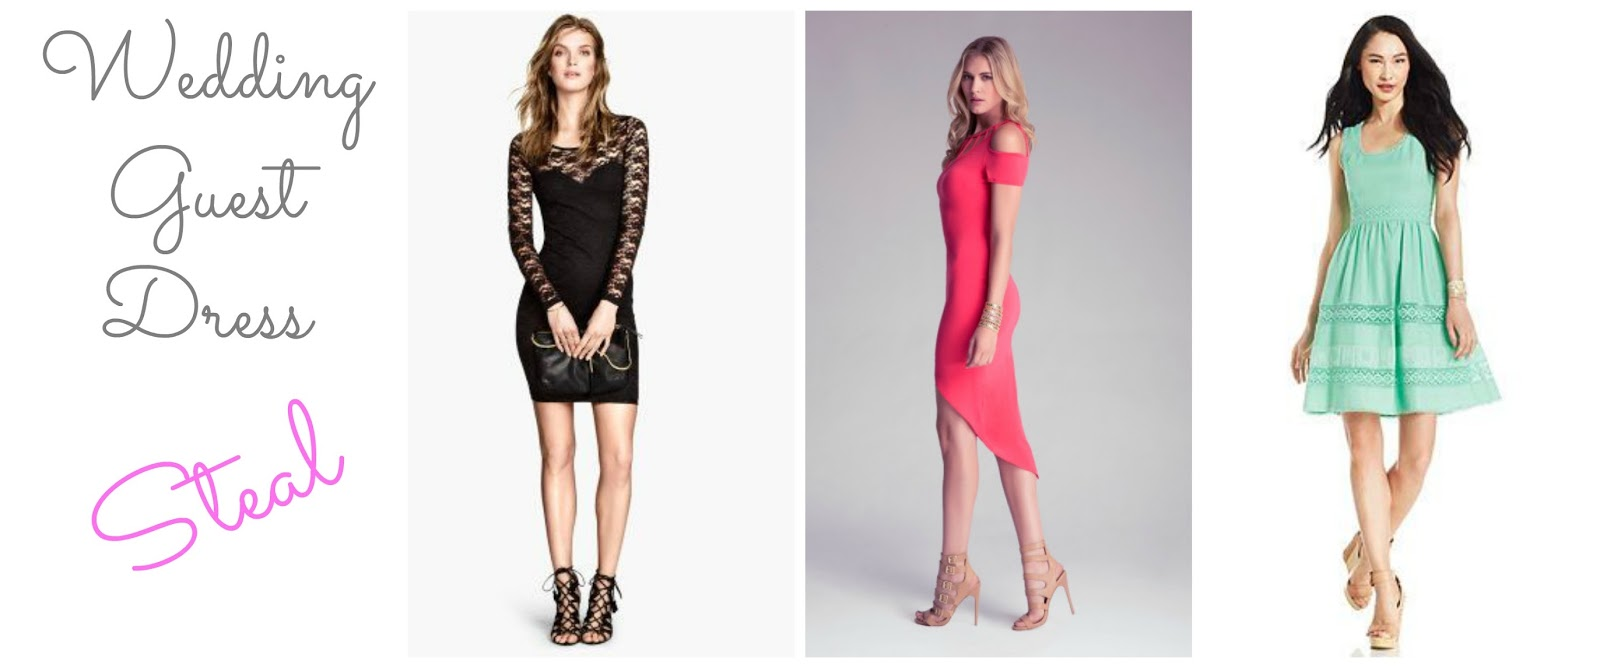 Suppose anything goes wedding guest dresses for every budget for Bebe dresses wedding guest